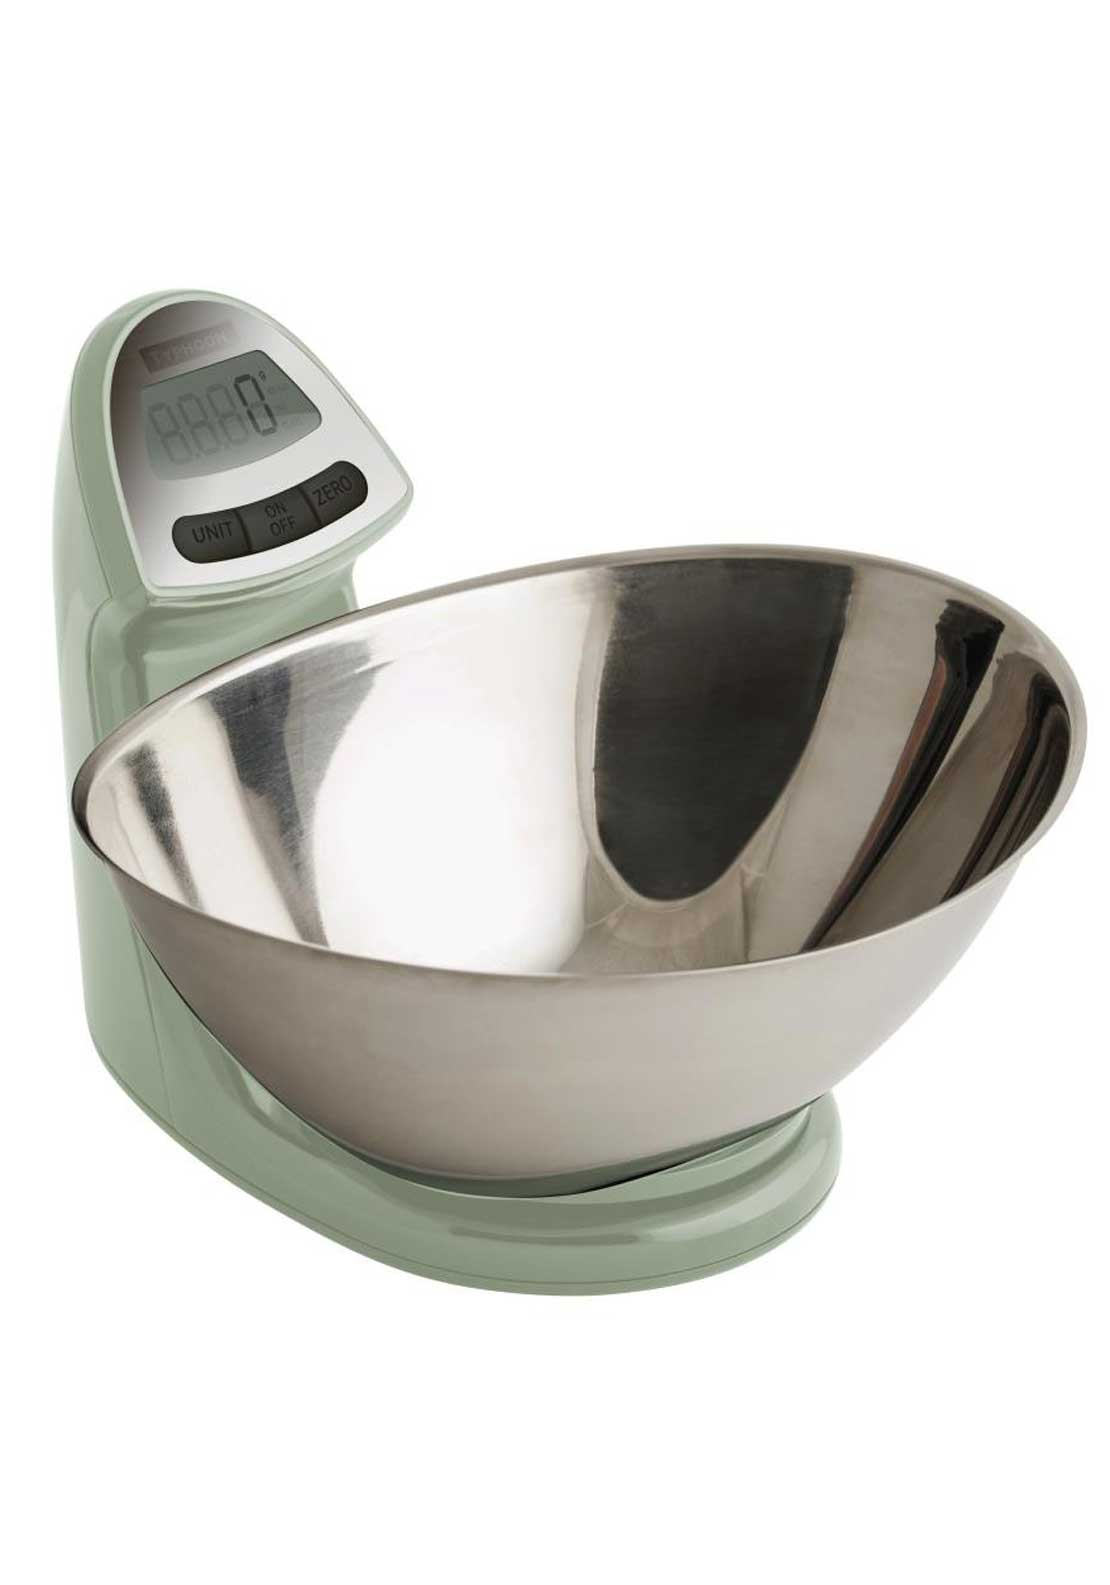 Typhoon 5kg Vision Electronic Kitchen Scales, Mint Green